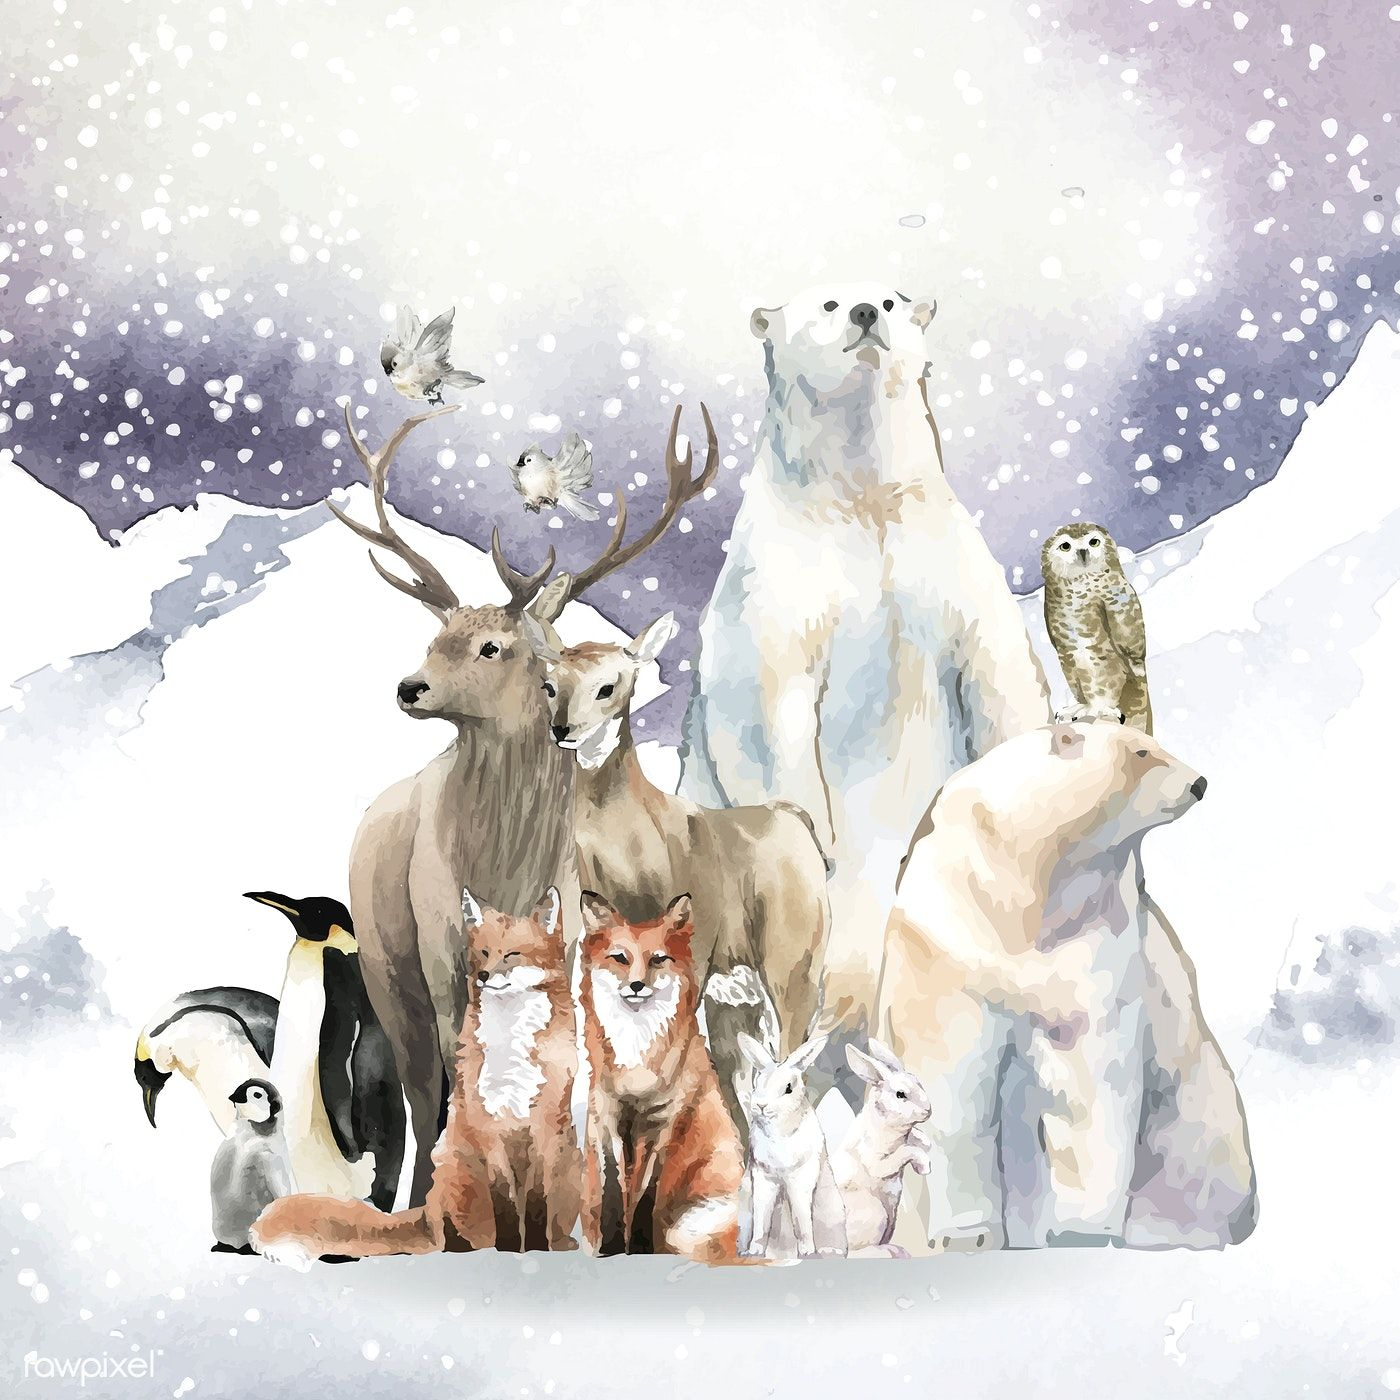 Group Of Wild Animals In The Snow Drawn In Watercolor Free Image